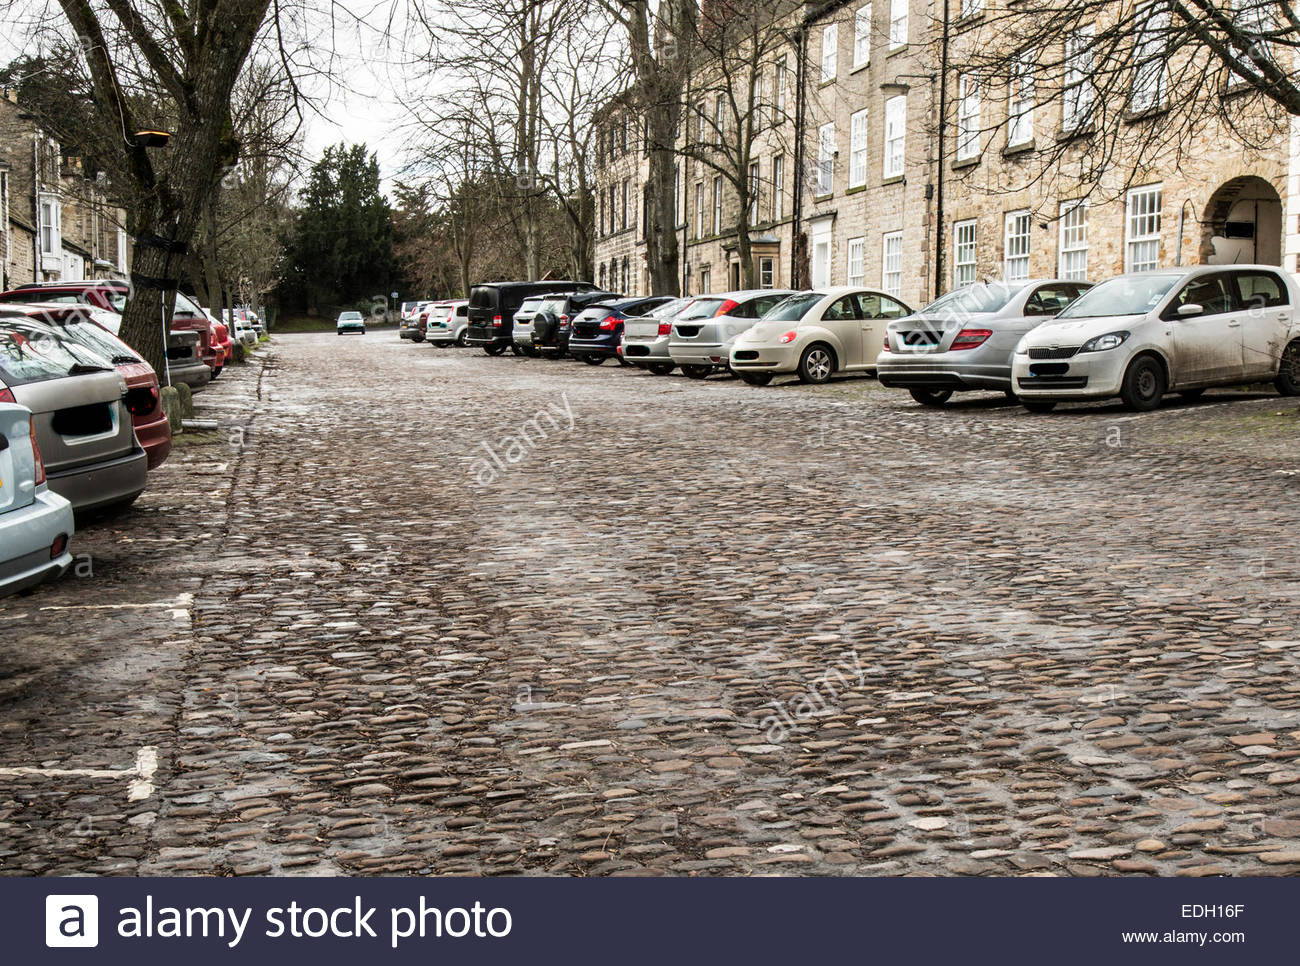 Long avenue in Richmond, Yorkshire - Stock Image